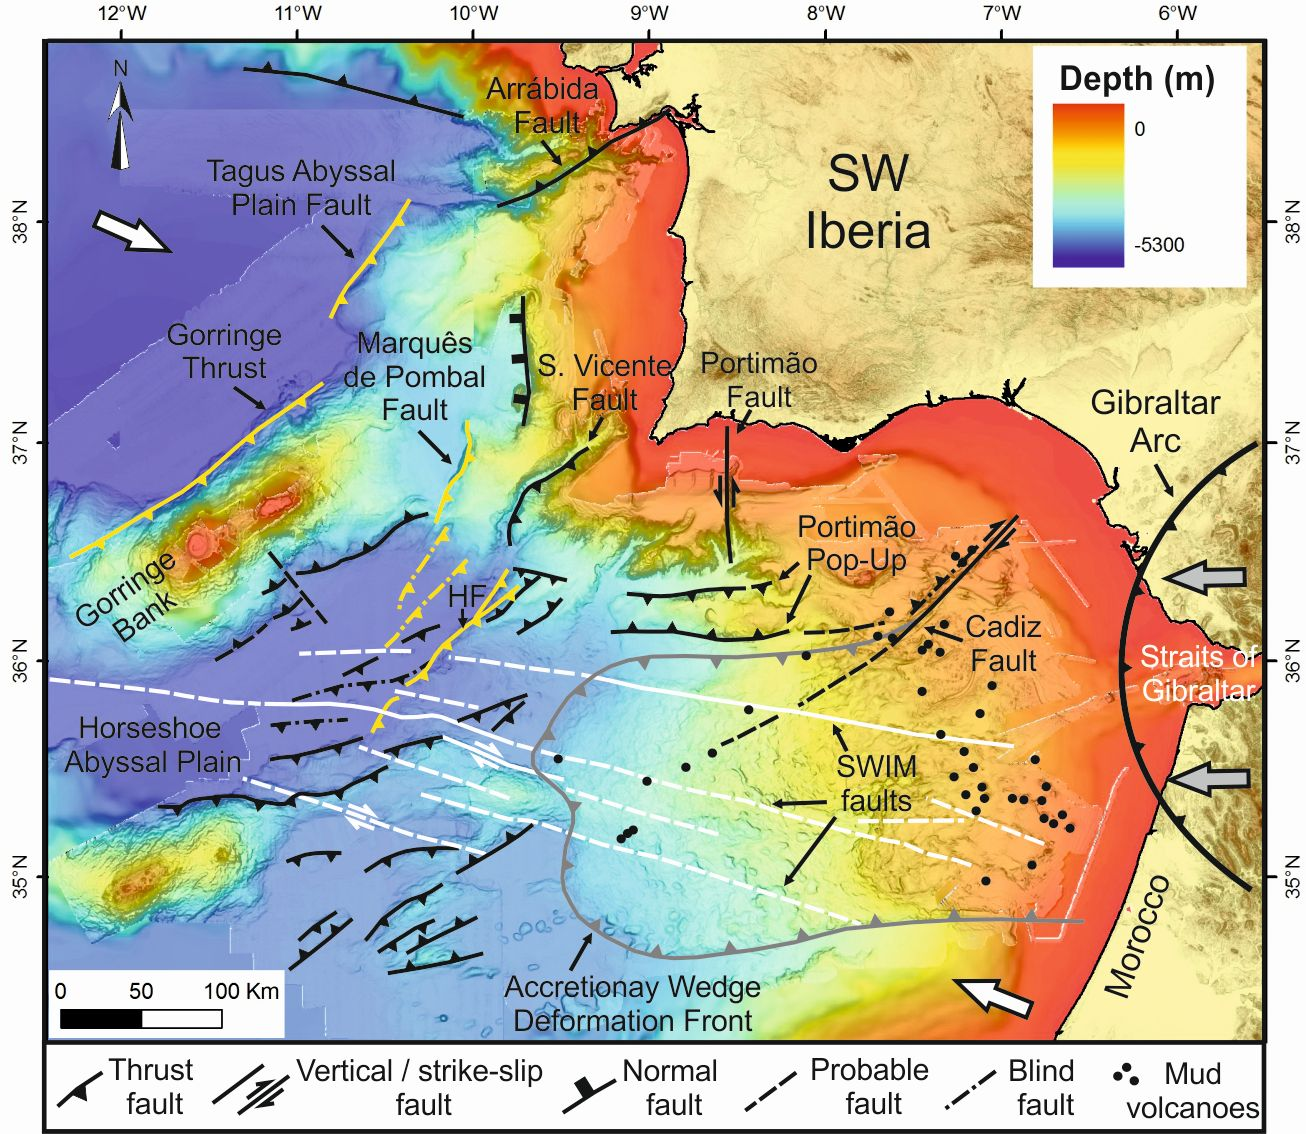 Geolog geotalk the life and death of an ocean is the atlantic in grey the deformation front of the gibraltararc in white the strike slip fault associated with the azores gibraltar fracture zone and in yellow the new sciox Image collections